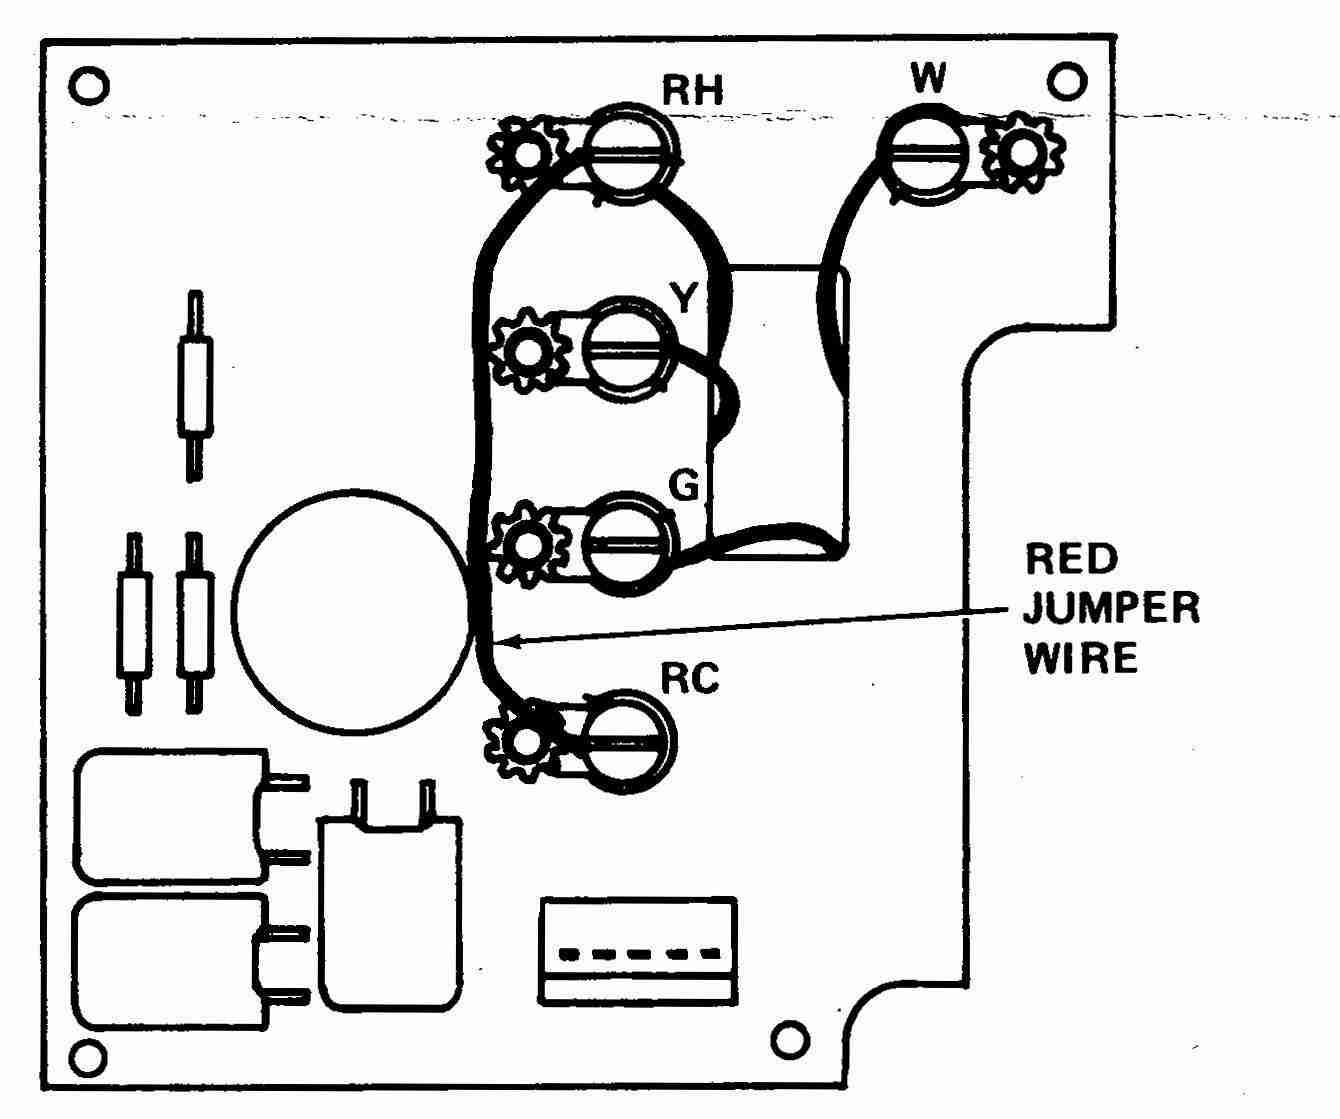 WR_1F90_006f16_DJFc how wire a white rodgers room thermostat, white rodgers thermostat lr27935 wiring diagram at bayanpartner.co